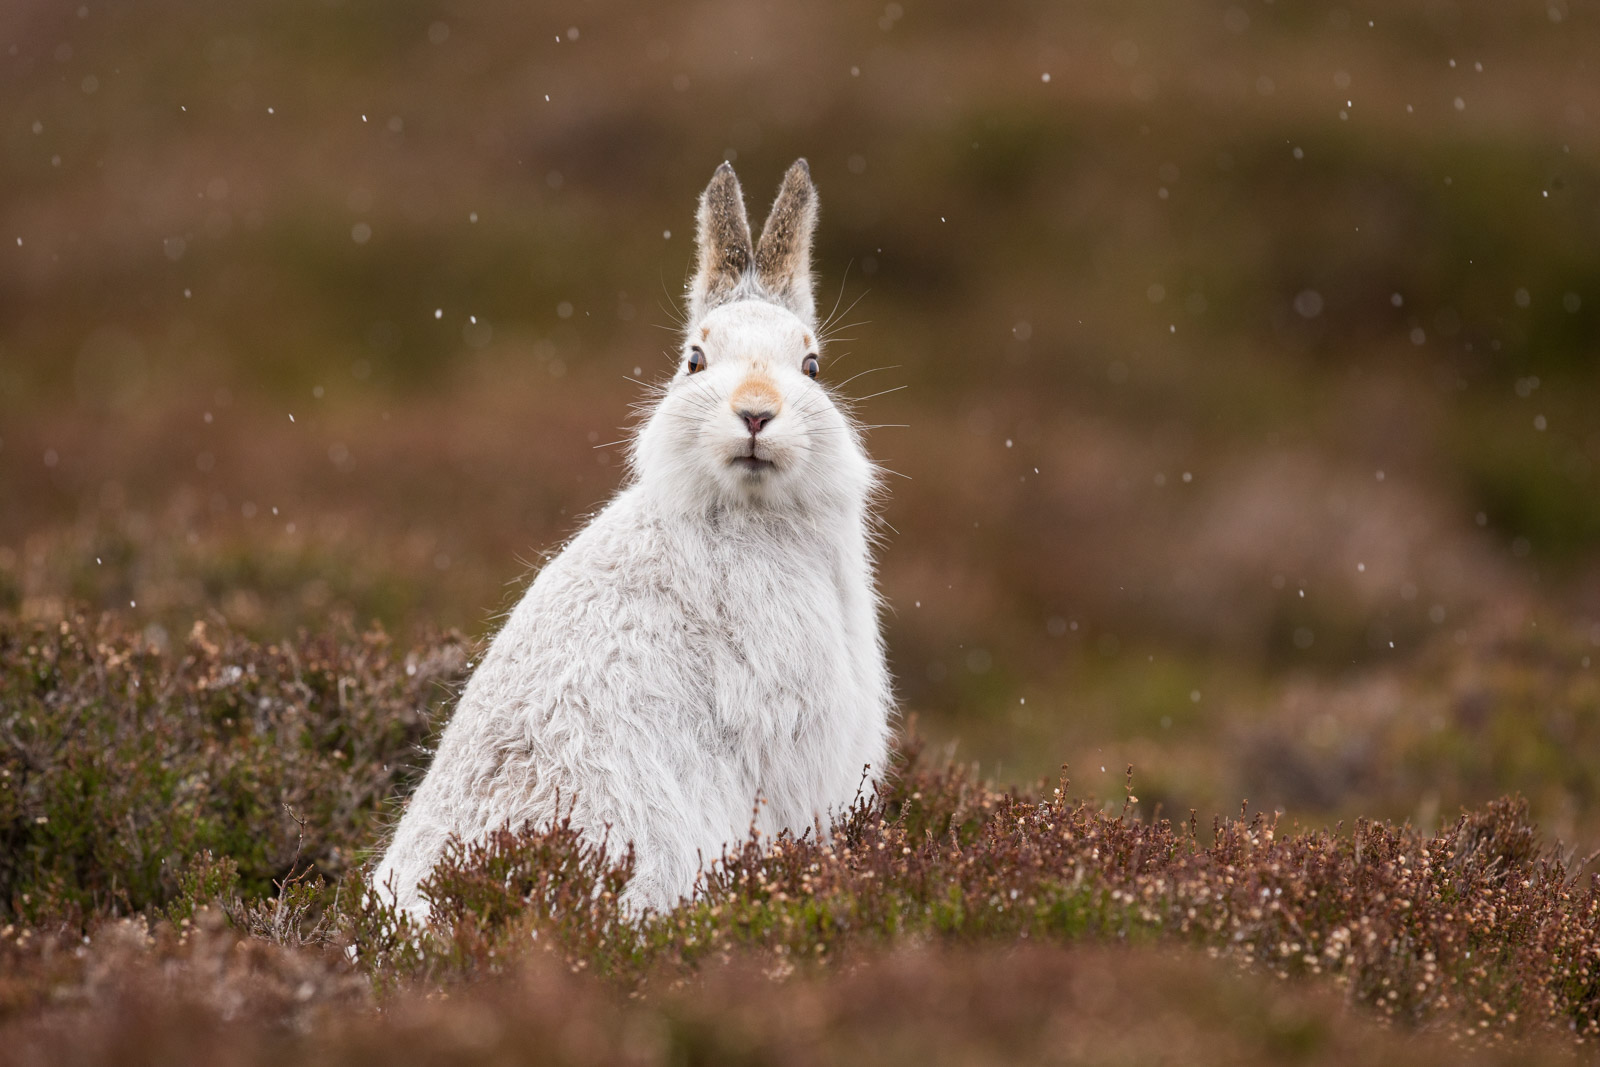 sigma 500mm f/4 lens wildlife photography sample images